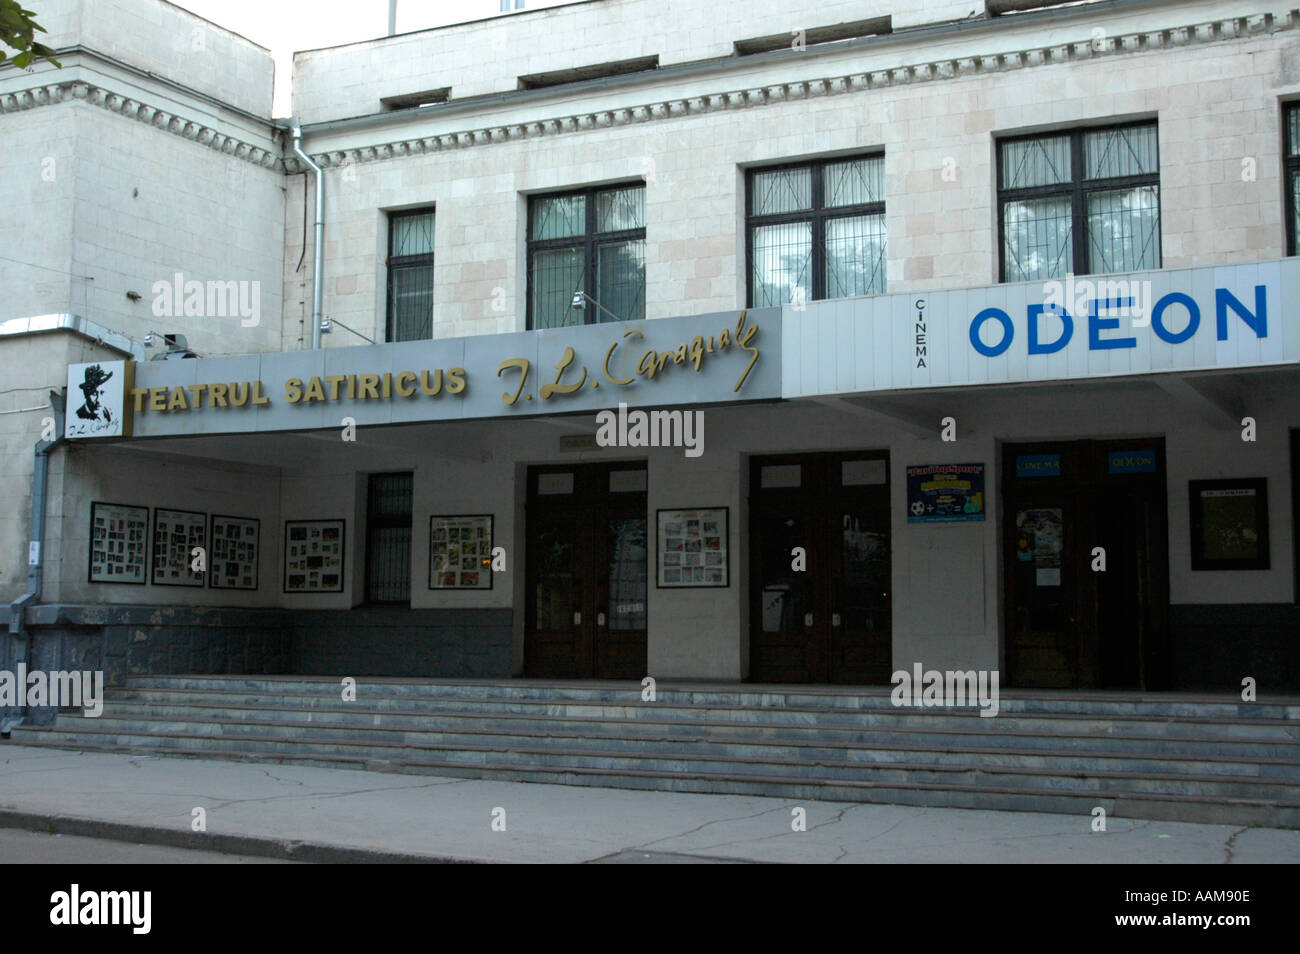 Chisinau, cinema Odeon - Stock Image